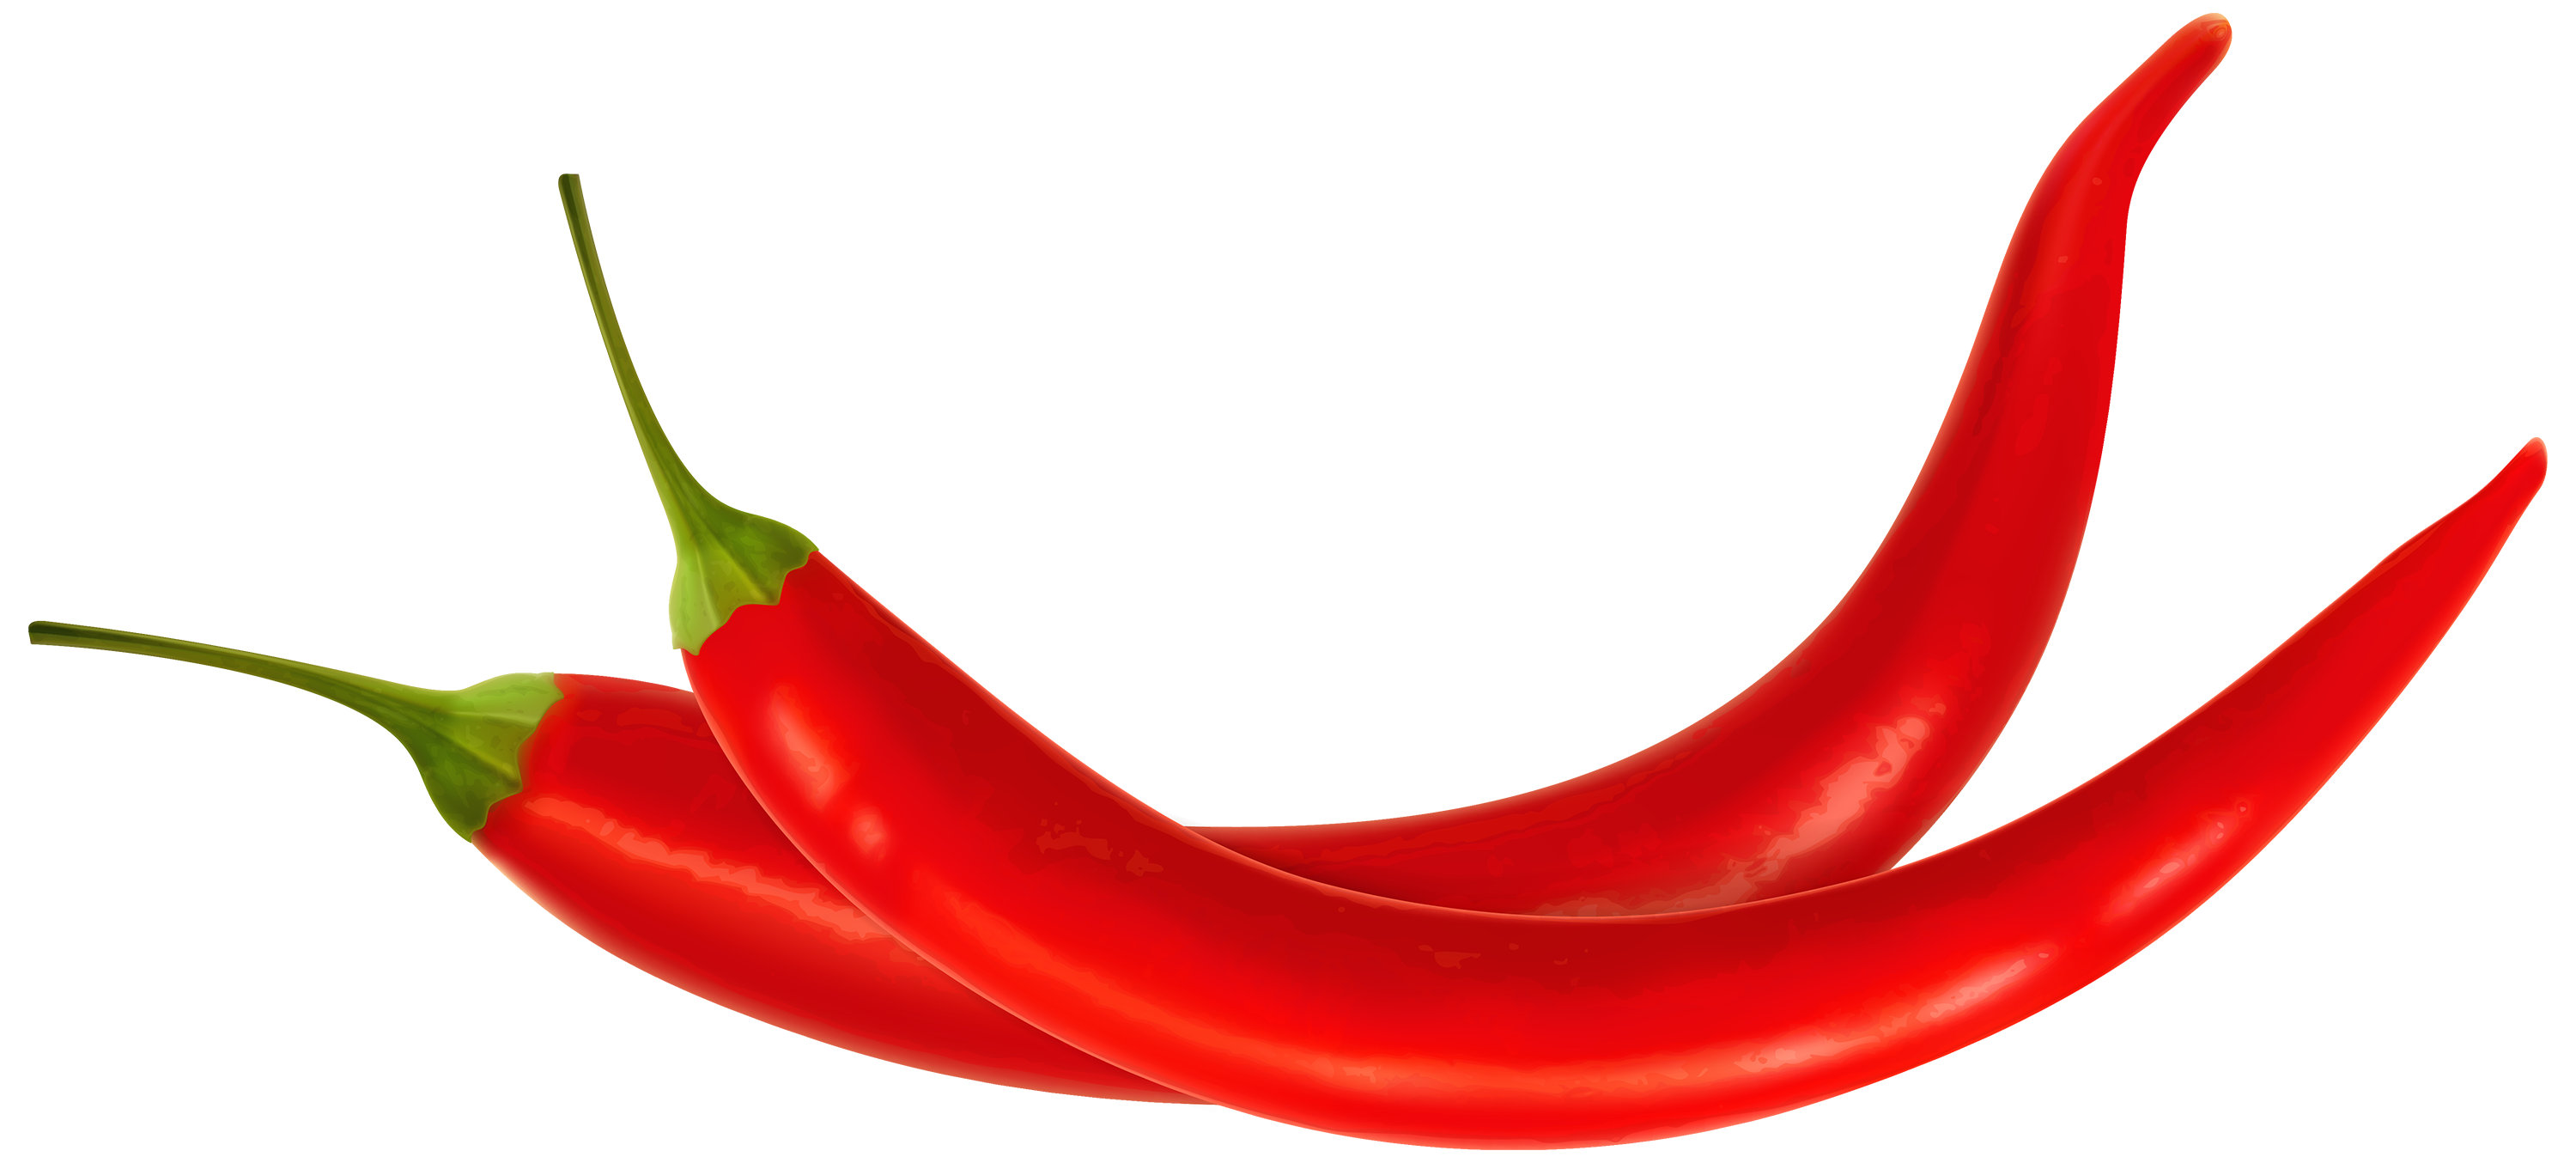 Red Chili Peppers PNG Clipart.